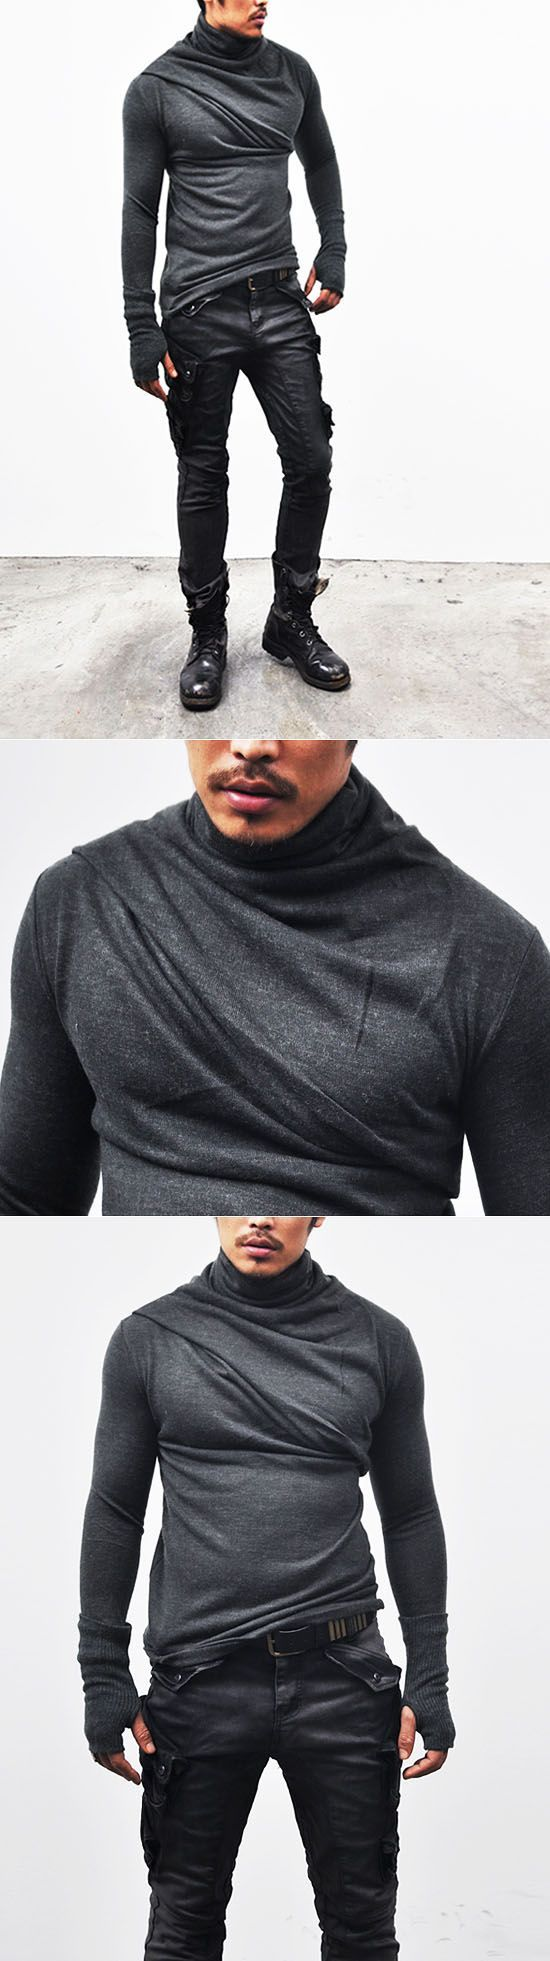 Tops :: Tees :: Avant-garde Bandage Armwarmer Turtle-Knit 32 - Mens Fashion Clothing For An Attractive Guy